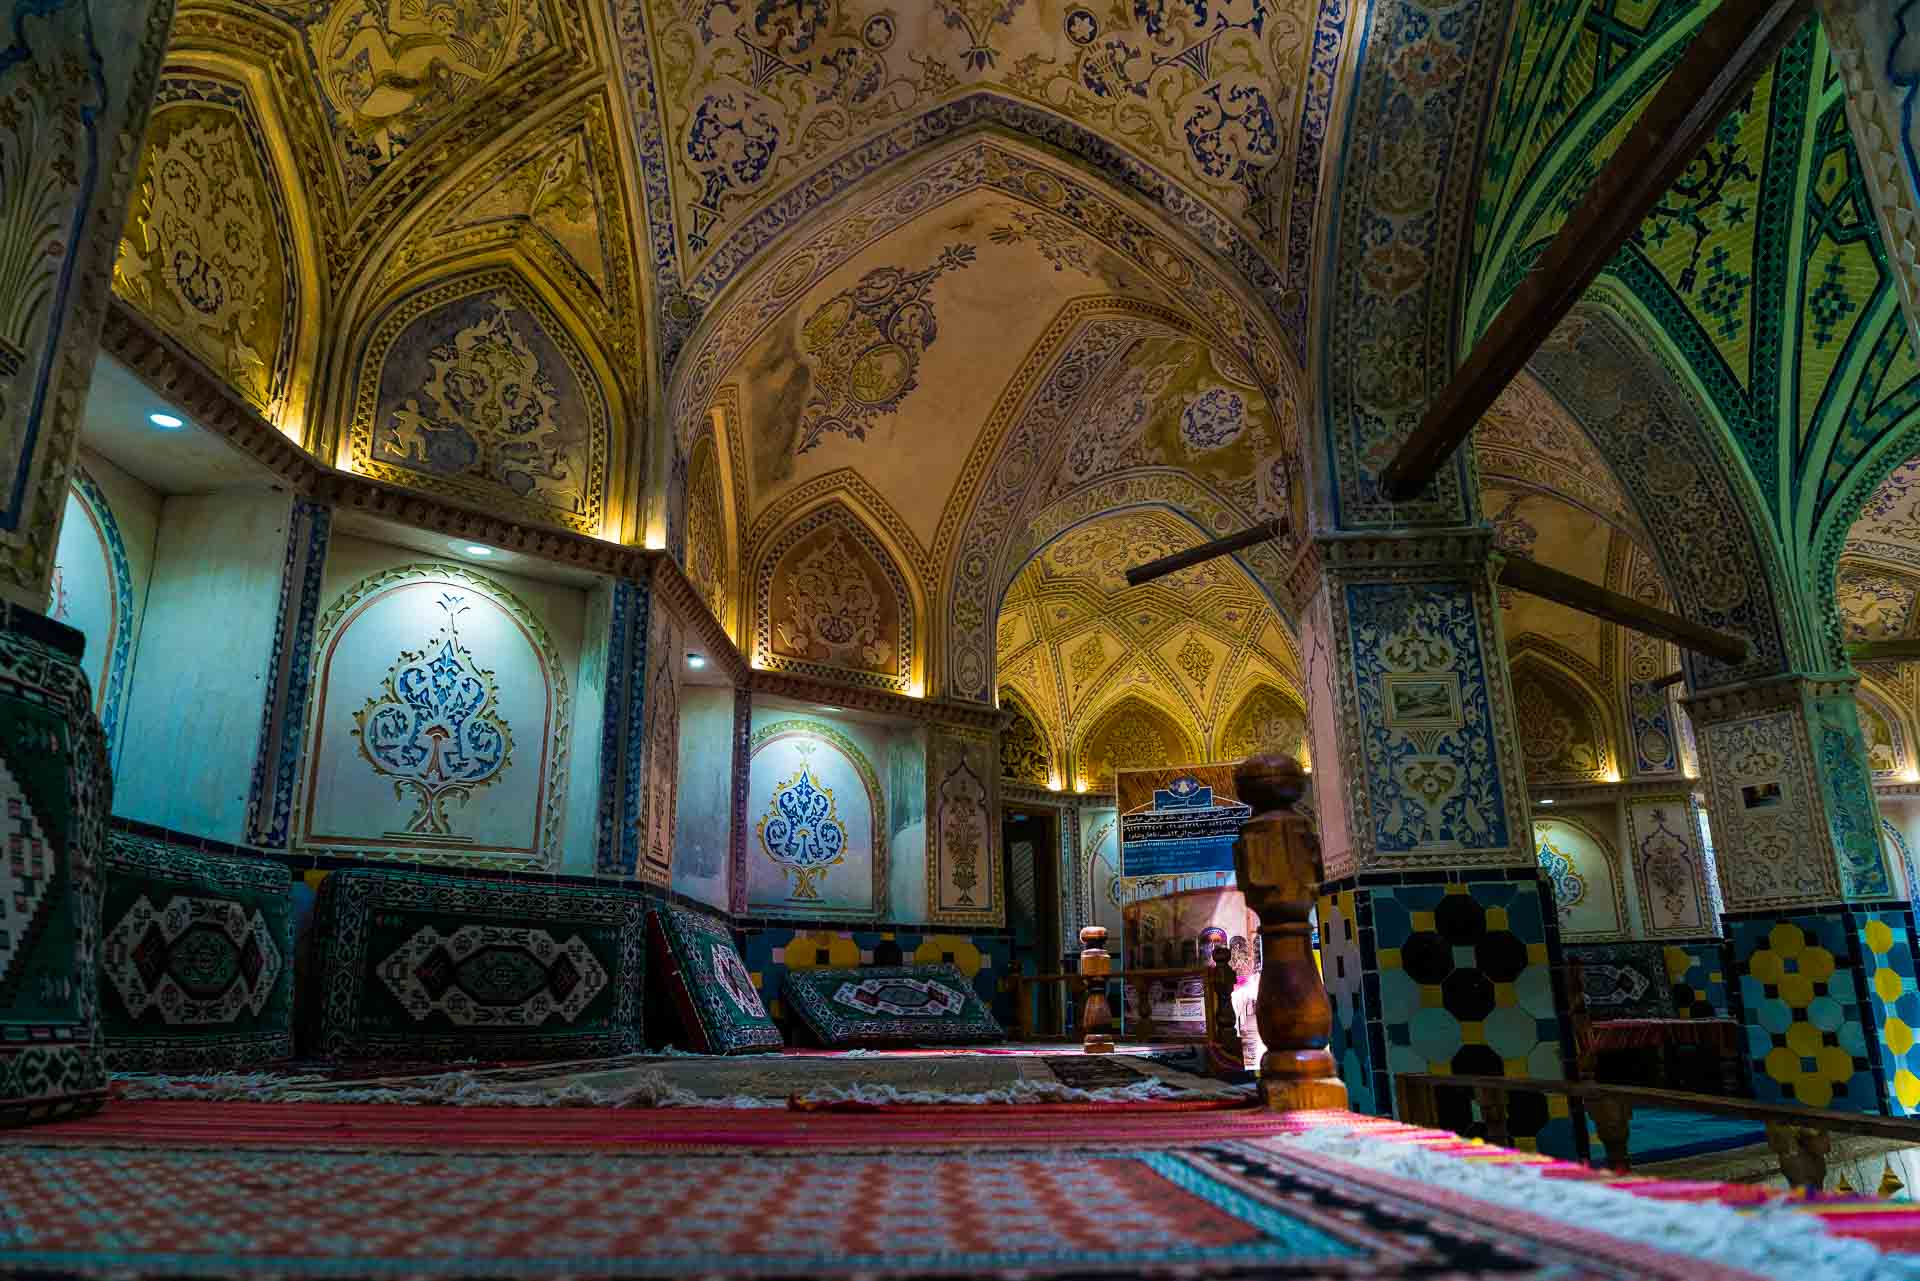 Sultan Amir Ahmad Bathhouse seats, kashan, iran, pescart, photo blog, travel blog, blog, photo travel blog, enrico pescantini, pescantini